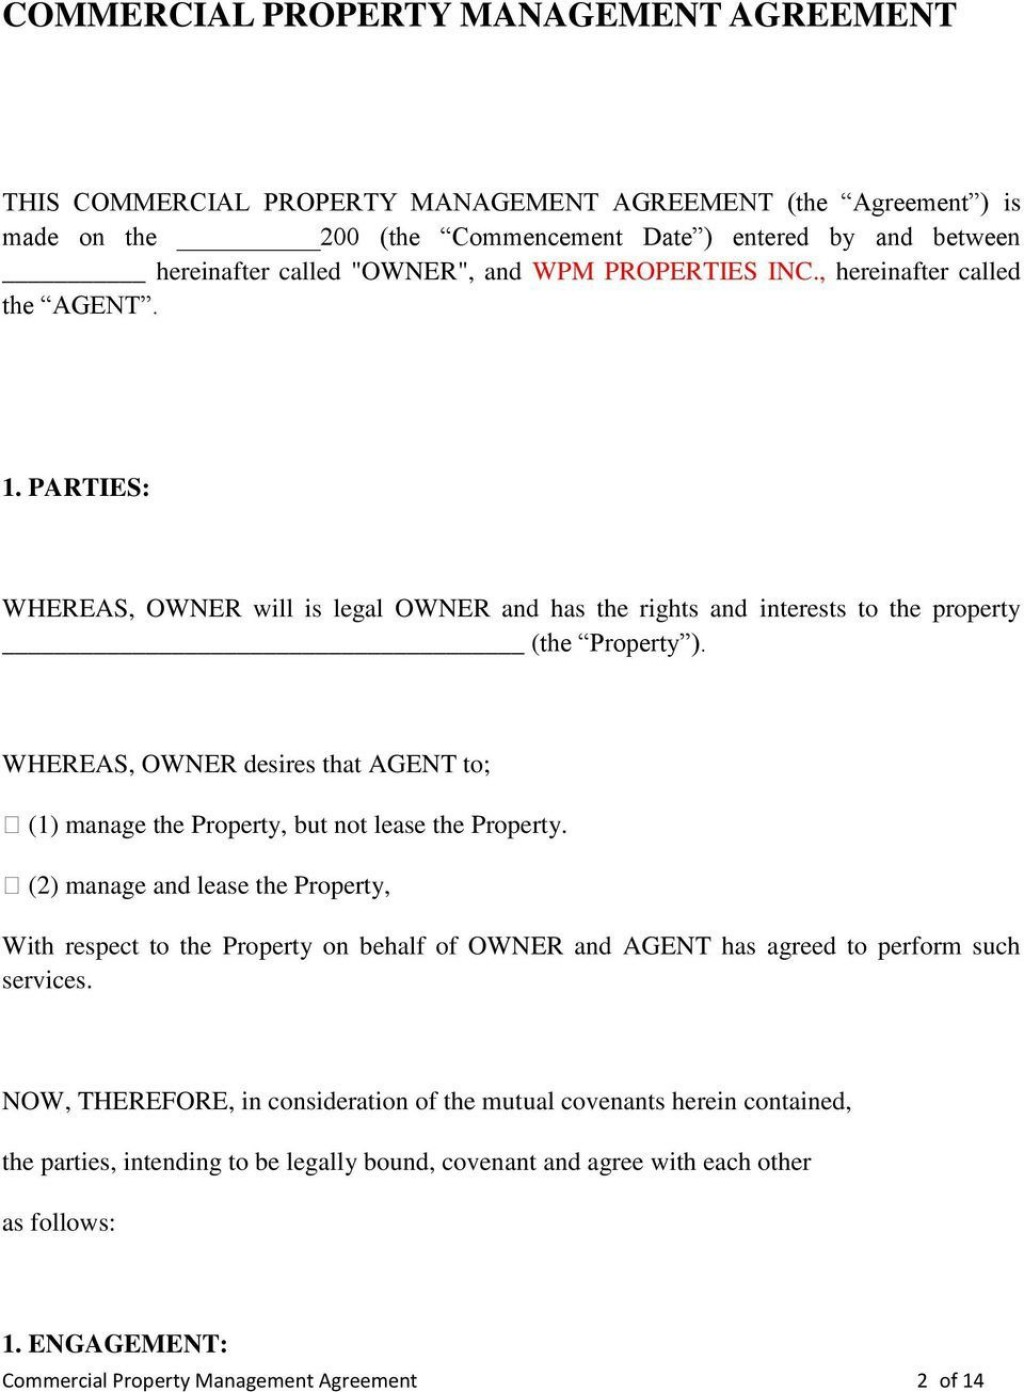 003 Impressive Property Management Contract Sample Highest Quality  Philippine Agreement Template Pdf CommercialLarge